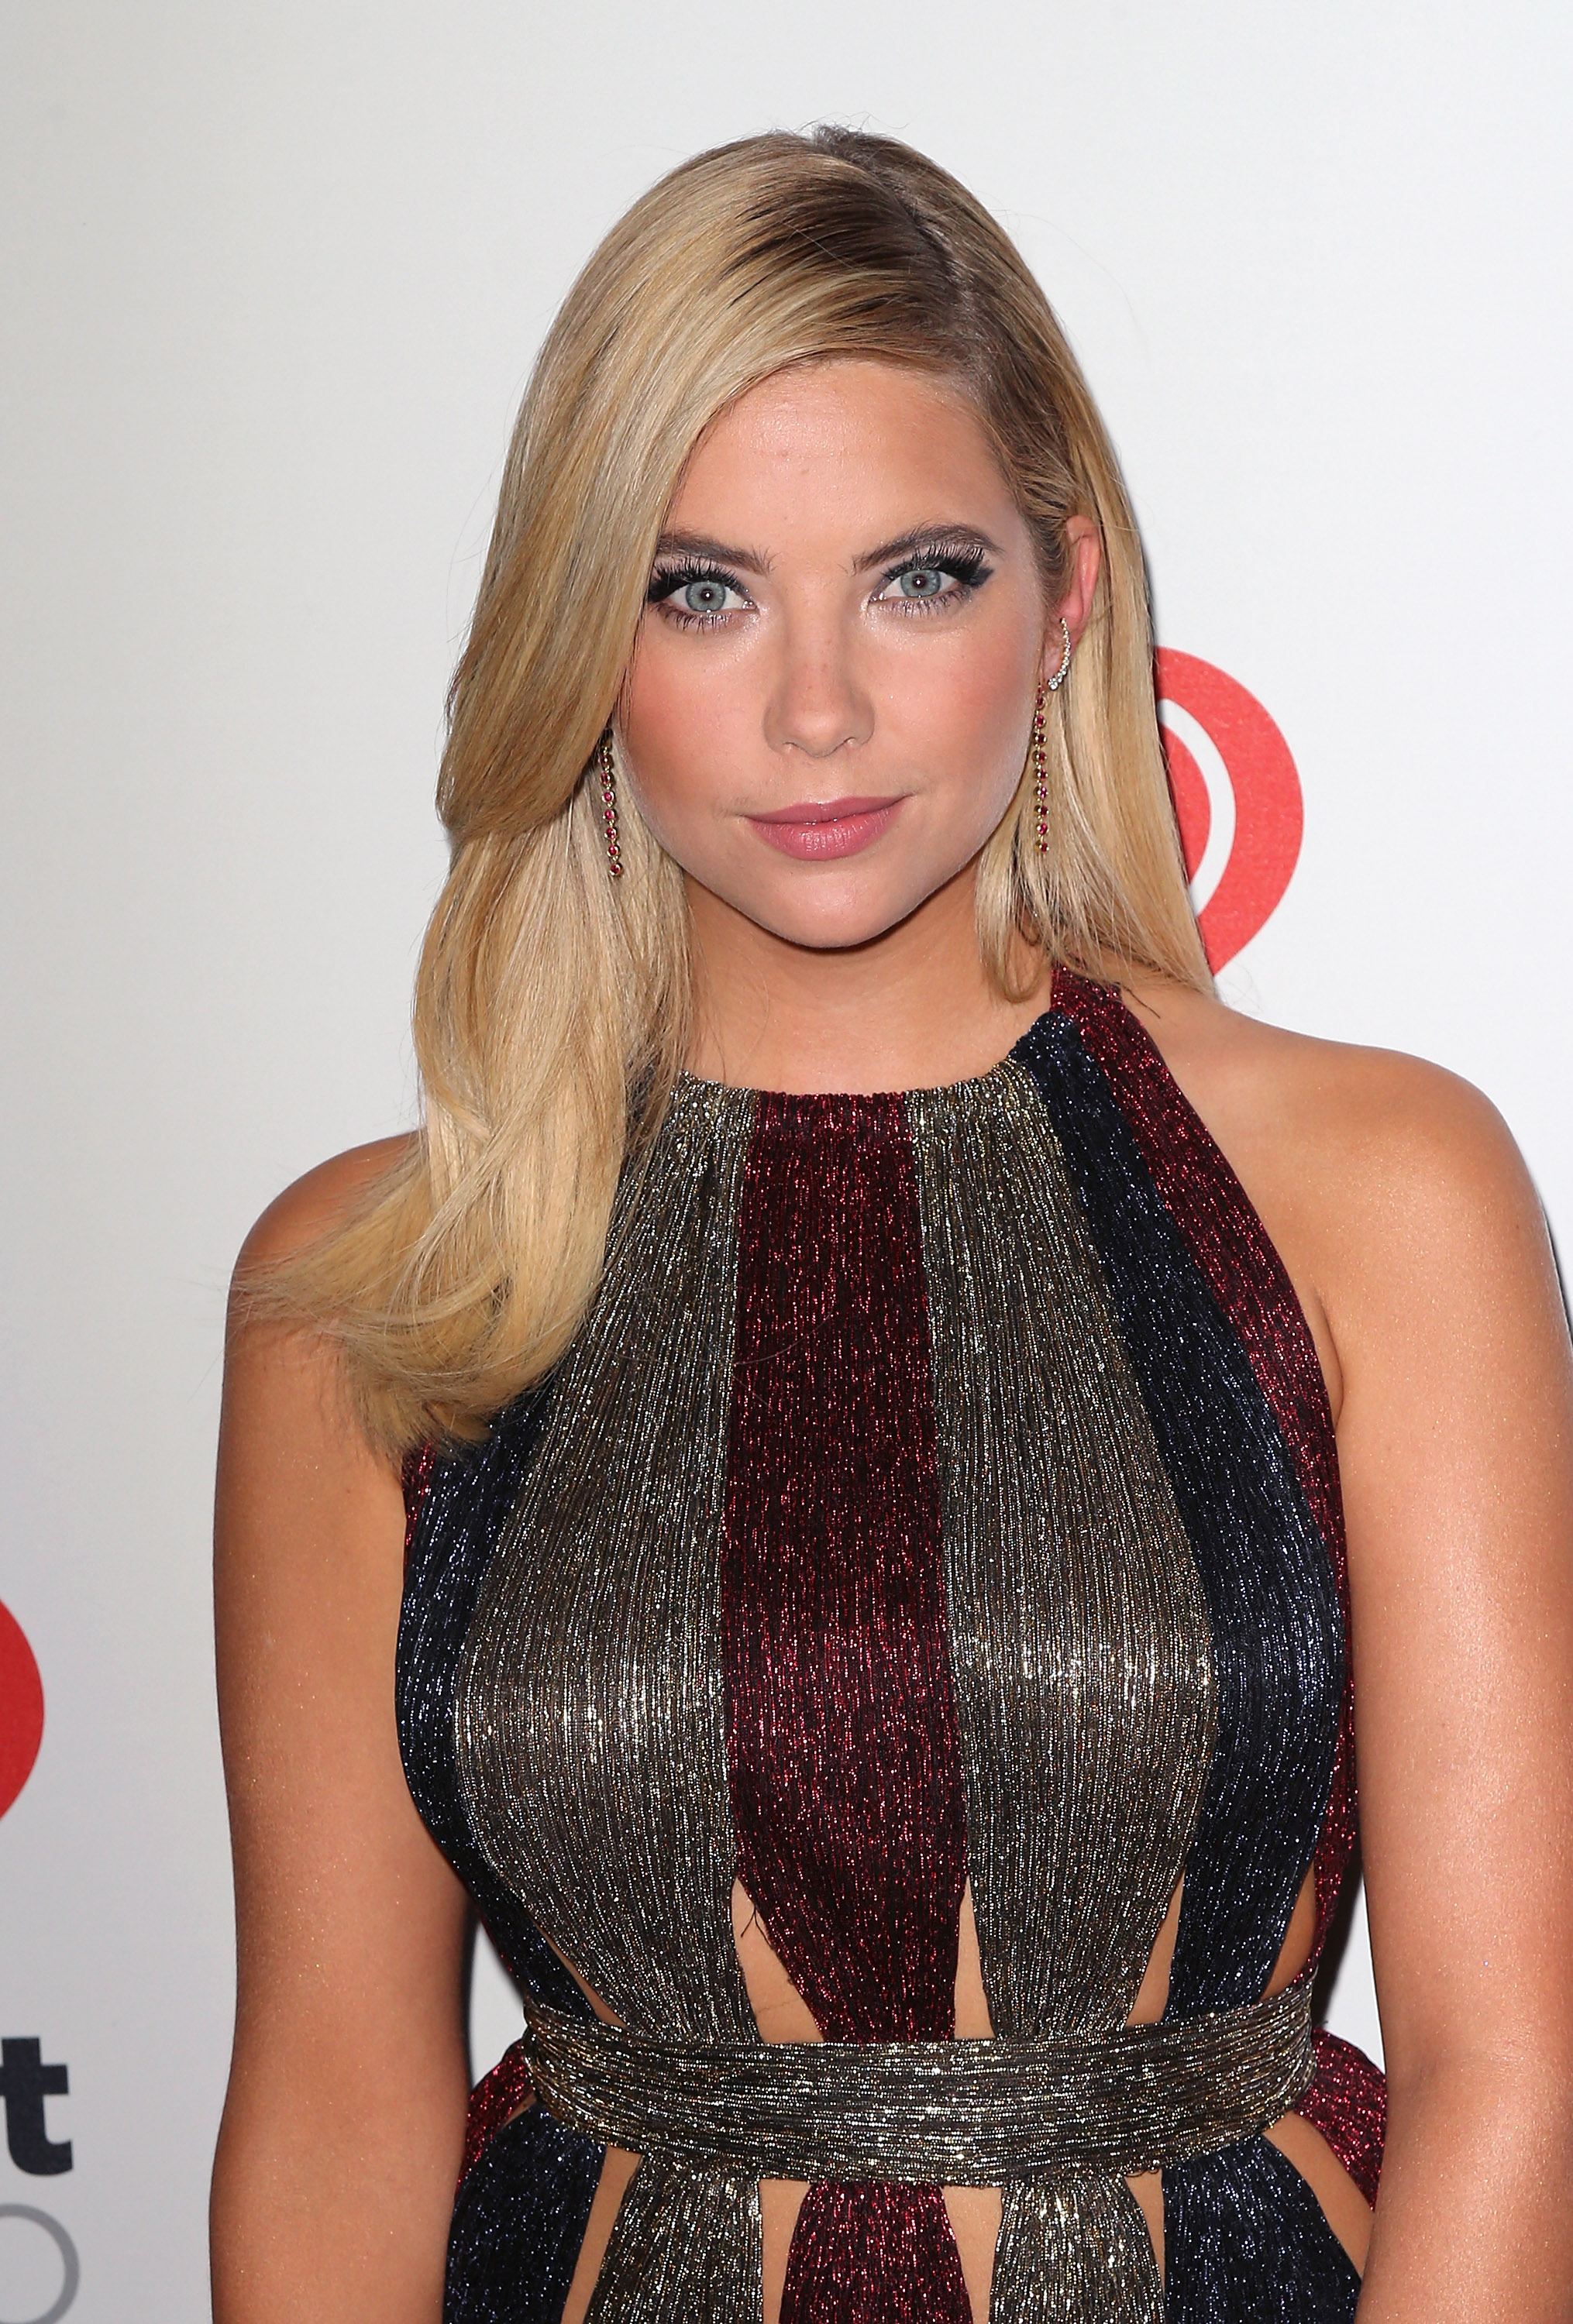 Ashley Benson presented at the iHeart Radio Music Festival rocking a sleek do styled by Bridget Brager using Matrix Style Link products.  Photo Credit: David Livingston